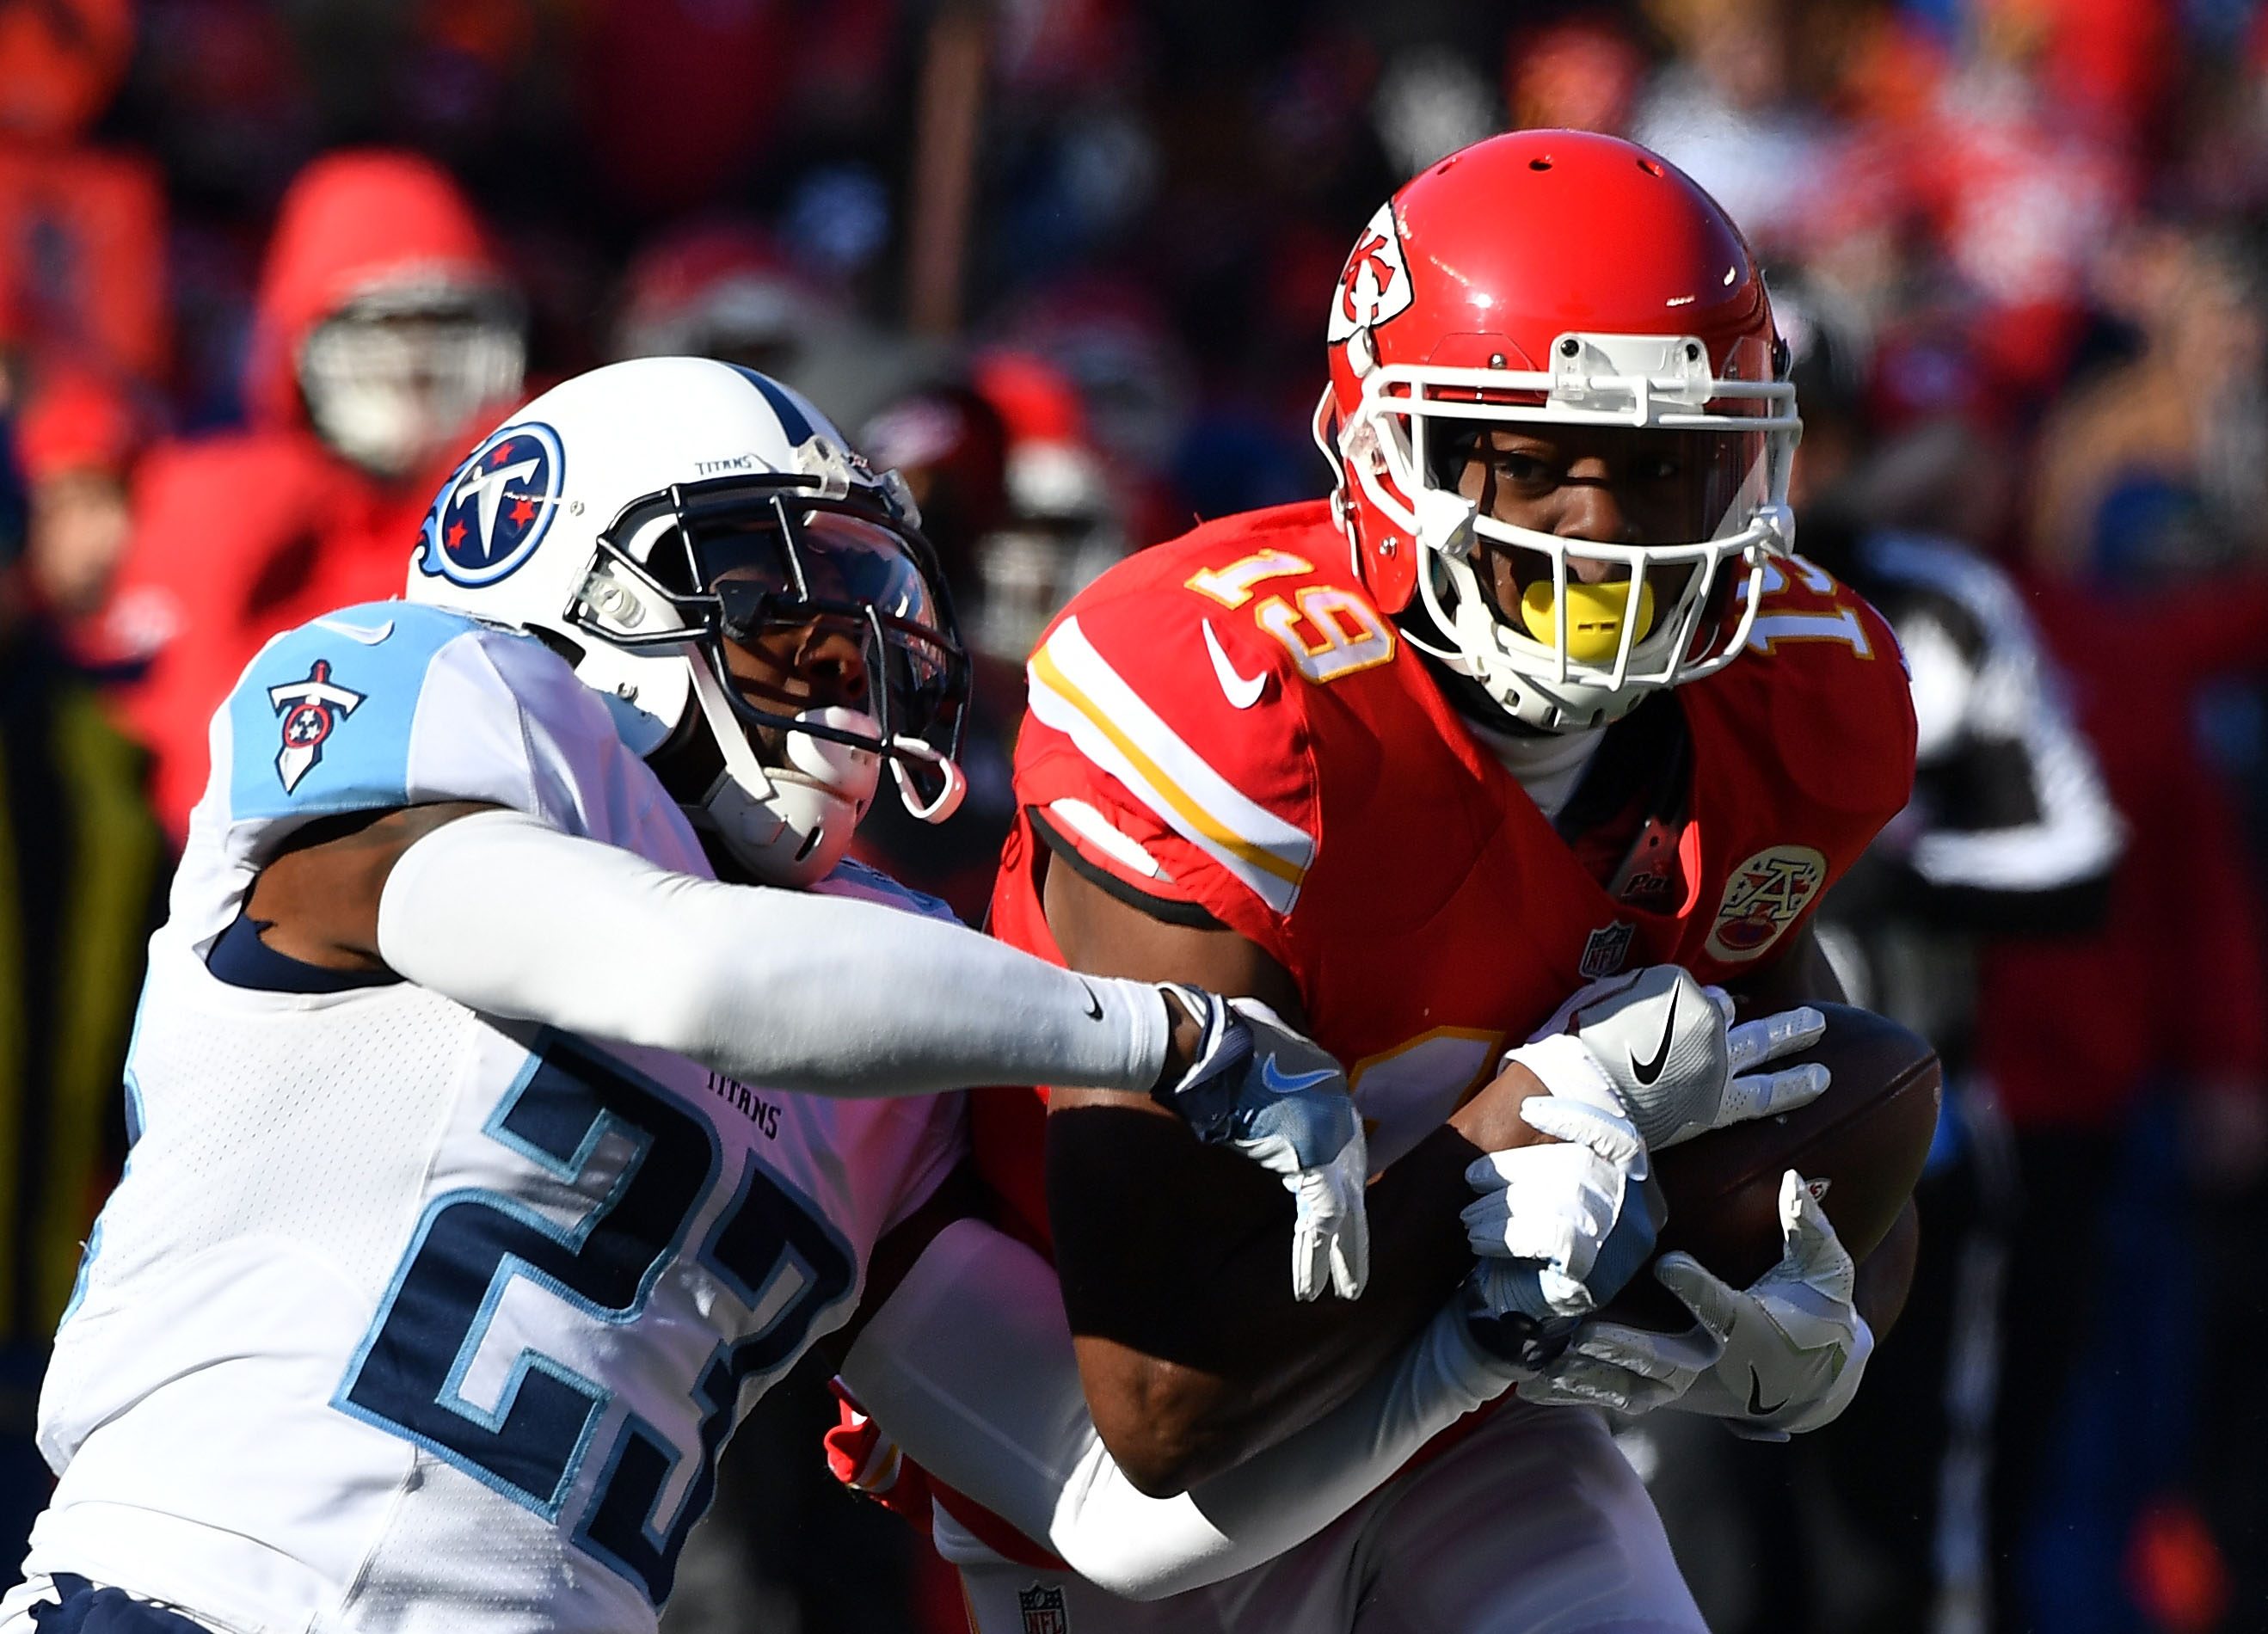 630205450-tennessee-titans-v-kansas-city-chiefs.jpg